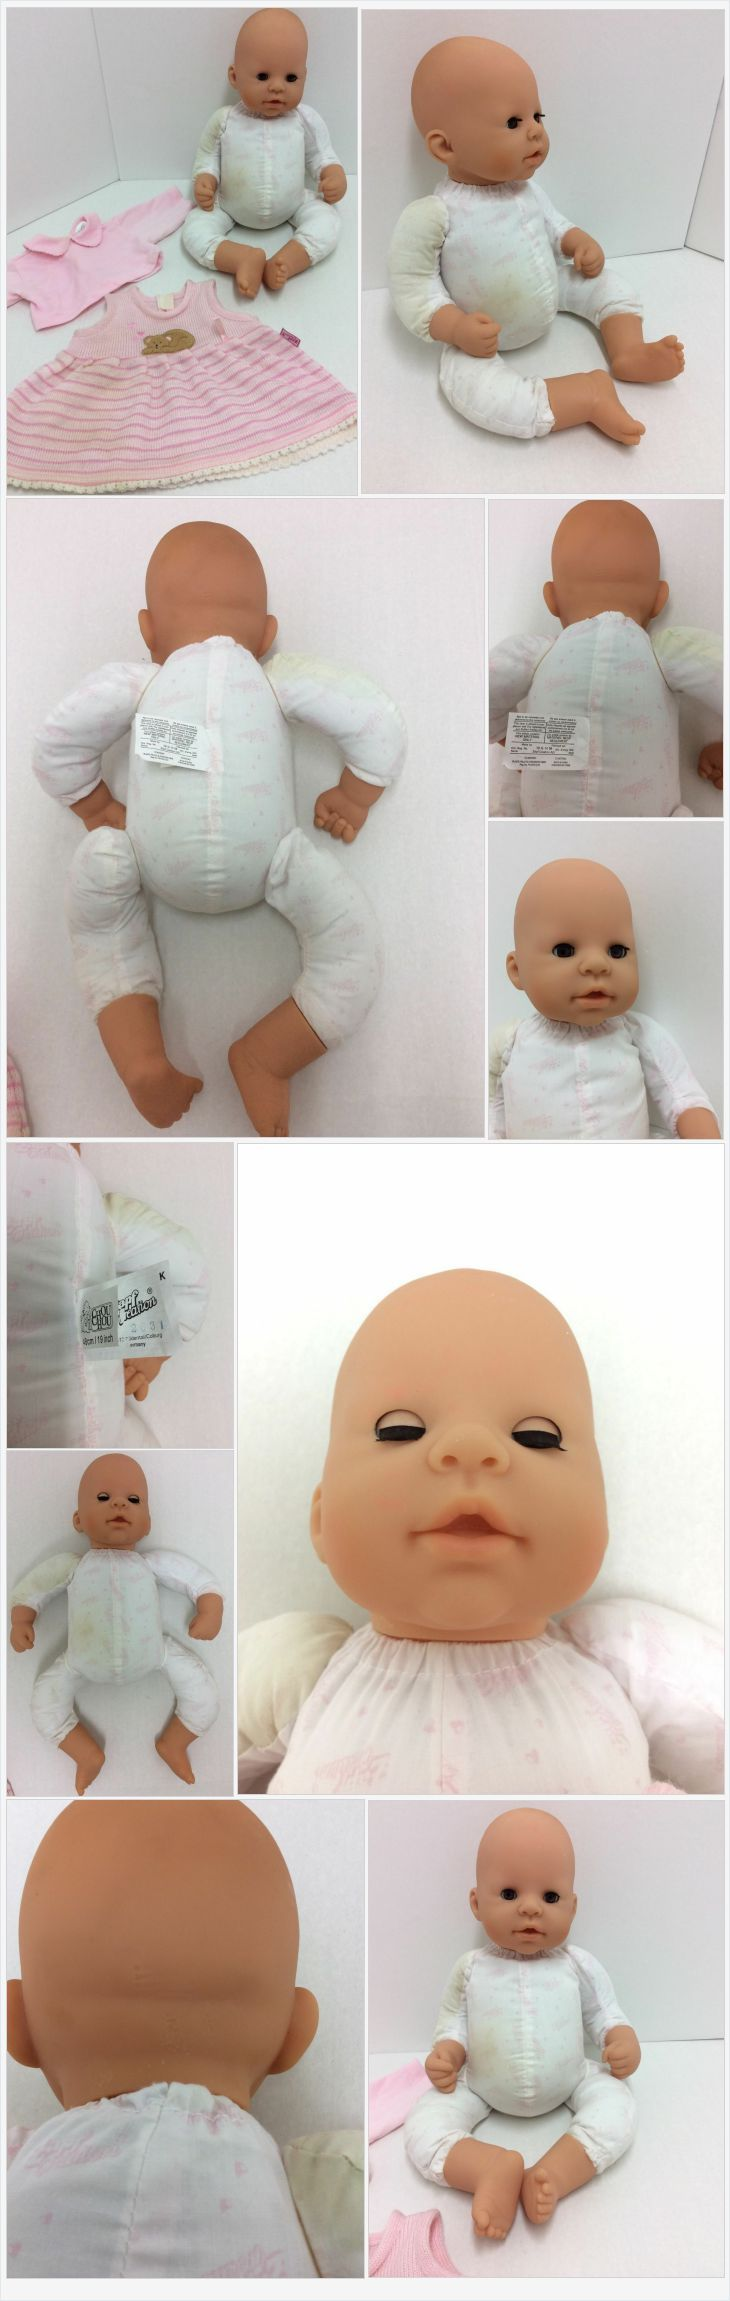 1000 Images About Looking For A Doll On Pinterest Baby